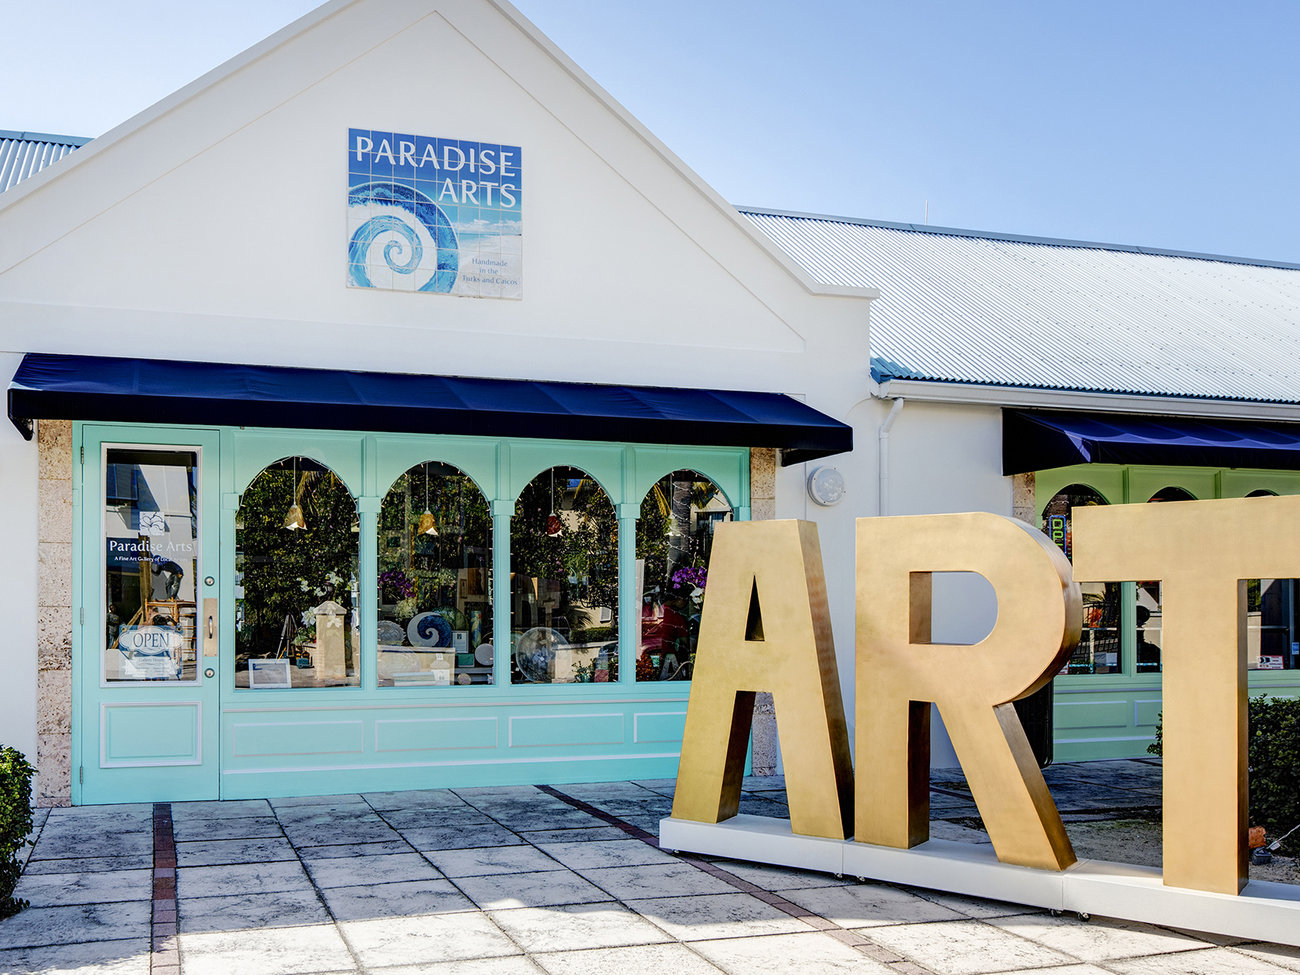 Paradise Arts in Turks and Caicos